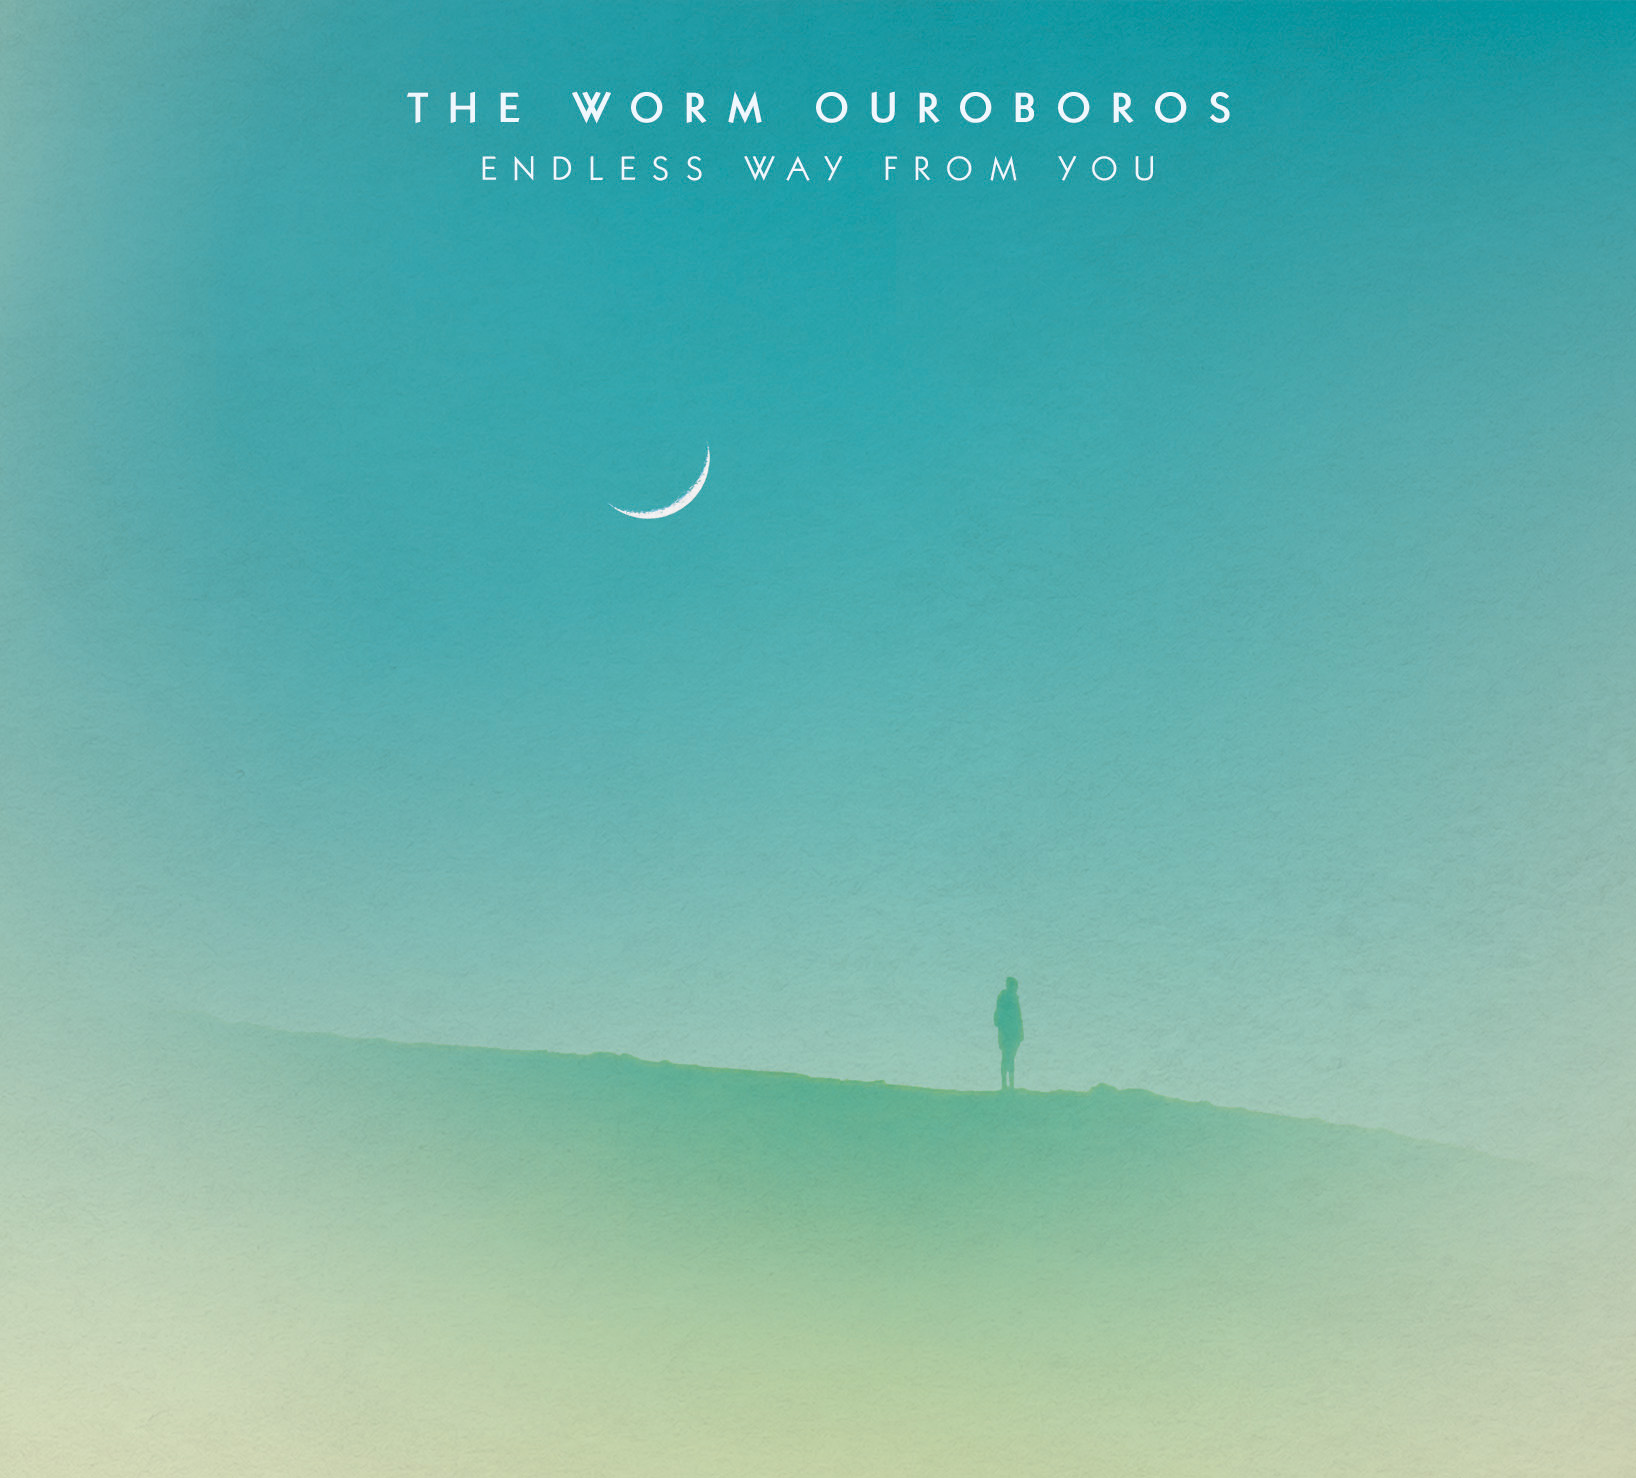 THE WORM OUROBOROS - Endless way from you CD